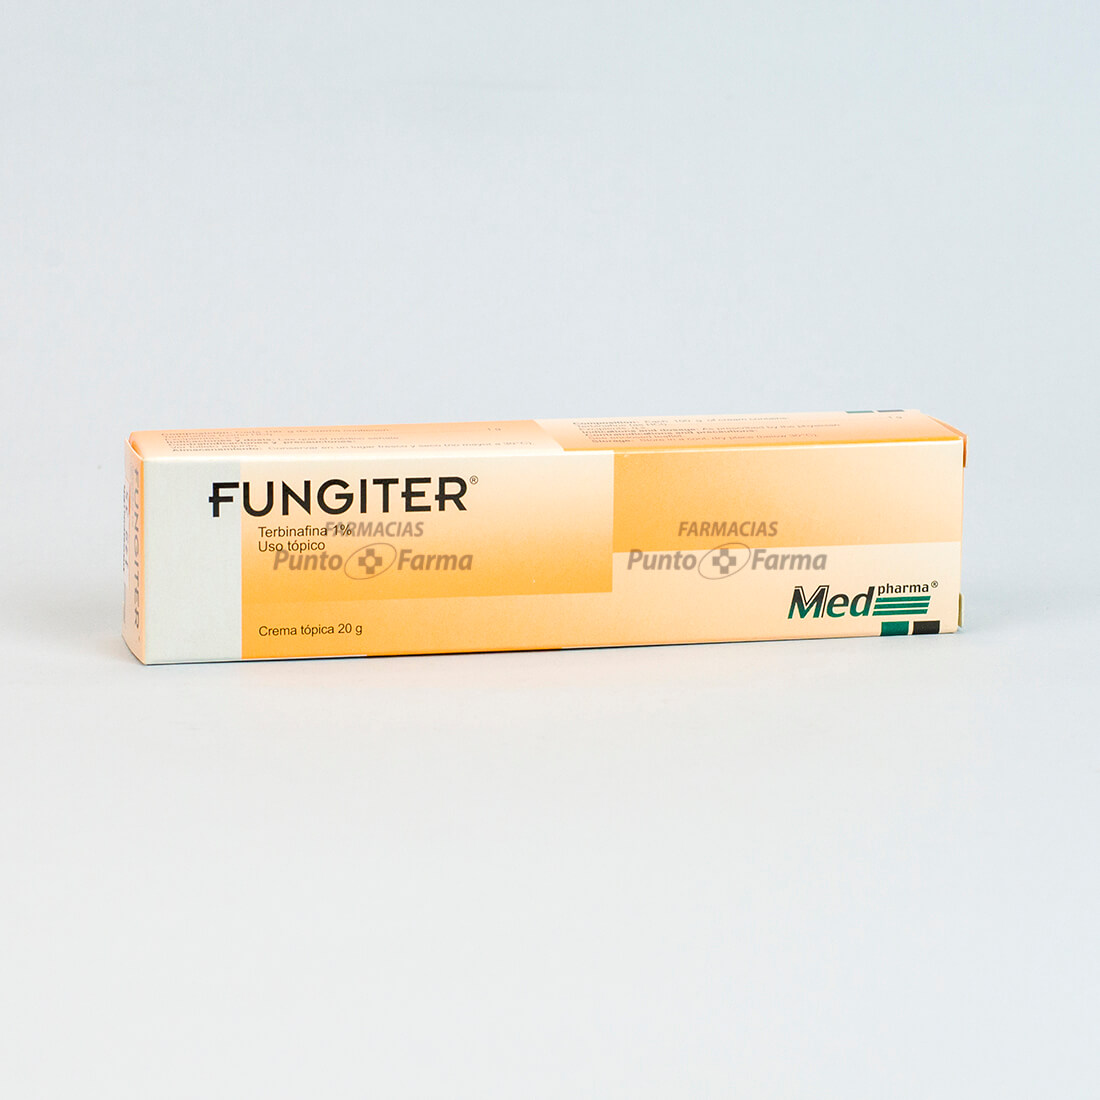 Fungiter 1% Crema Topicax20G